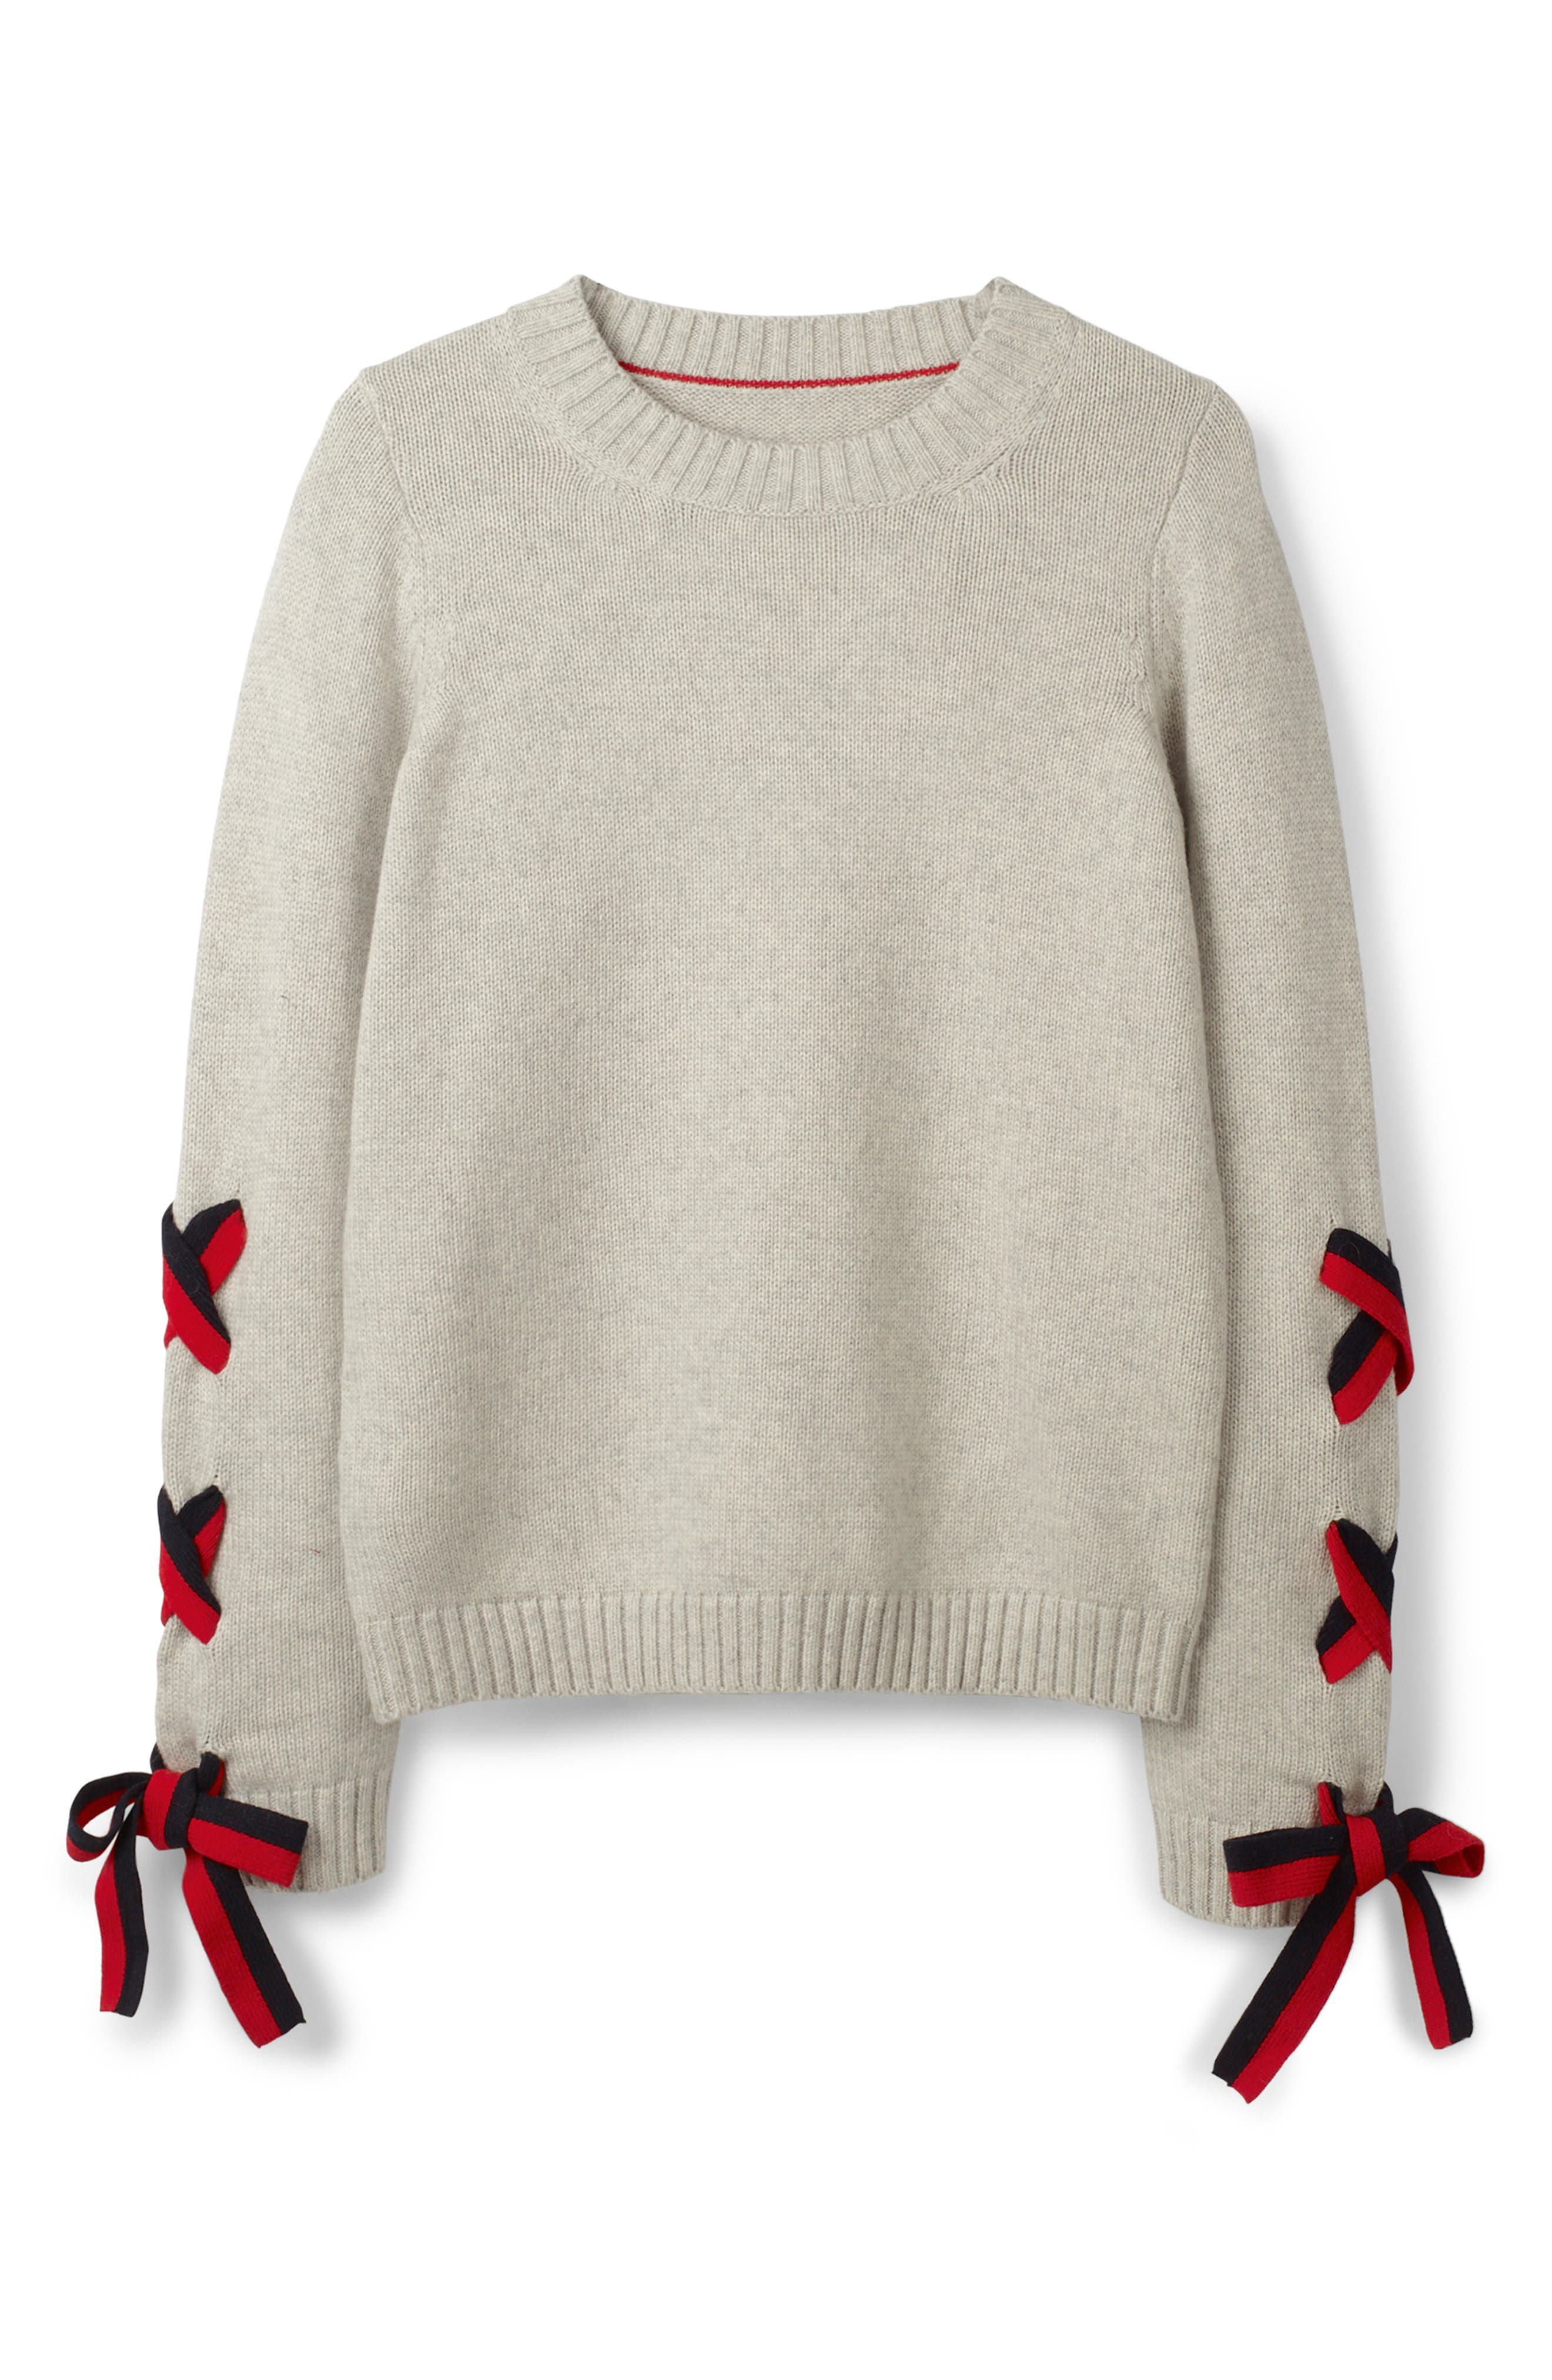 BODEN,                             Angelica Sweater,                             Alternate thumbnail 5, color,                             042